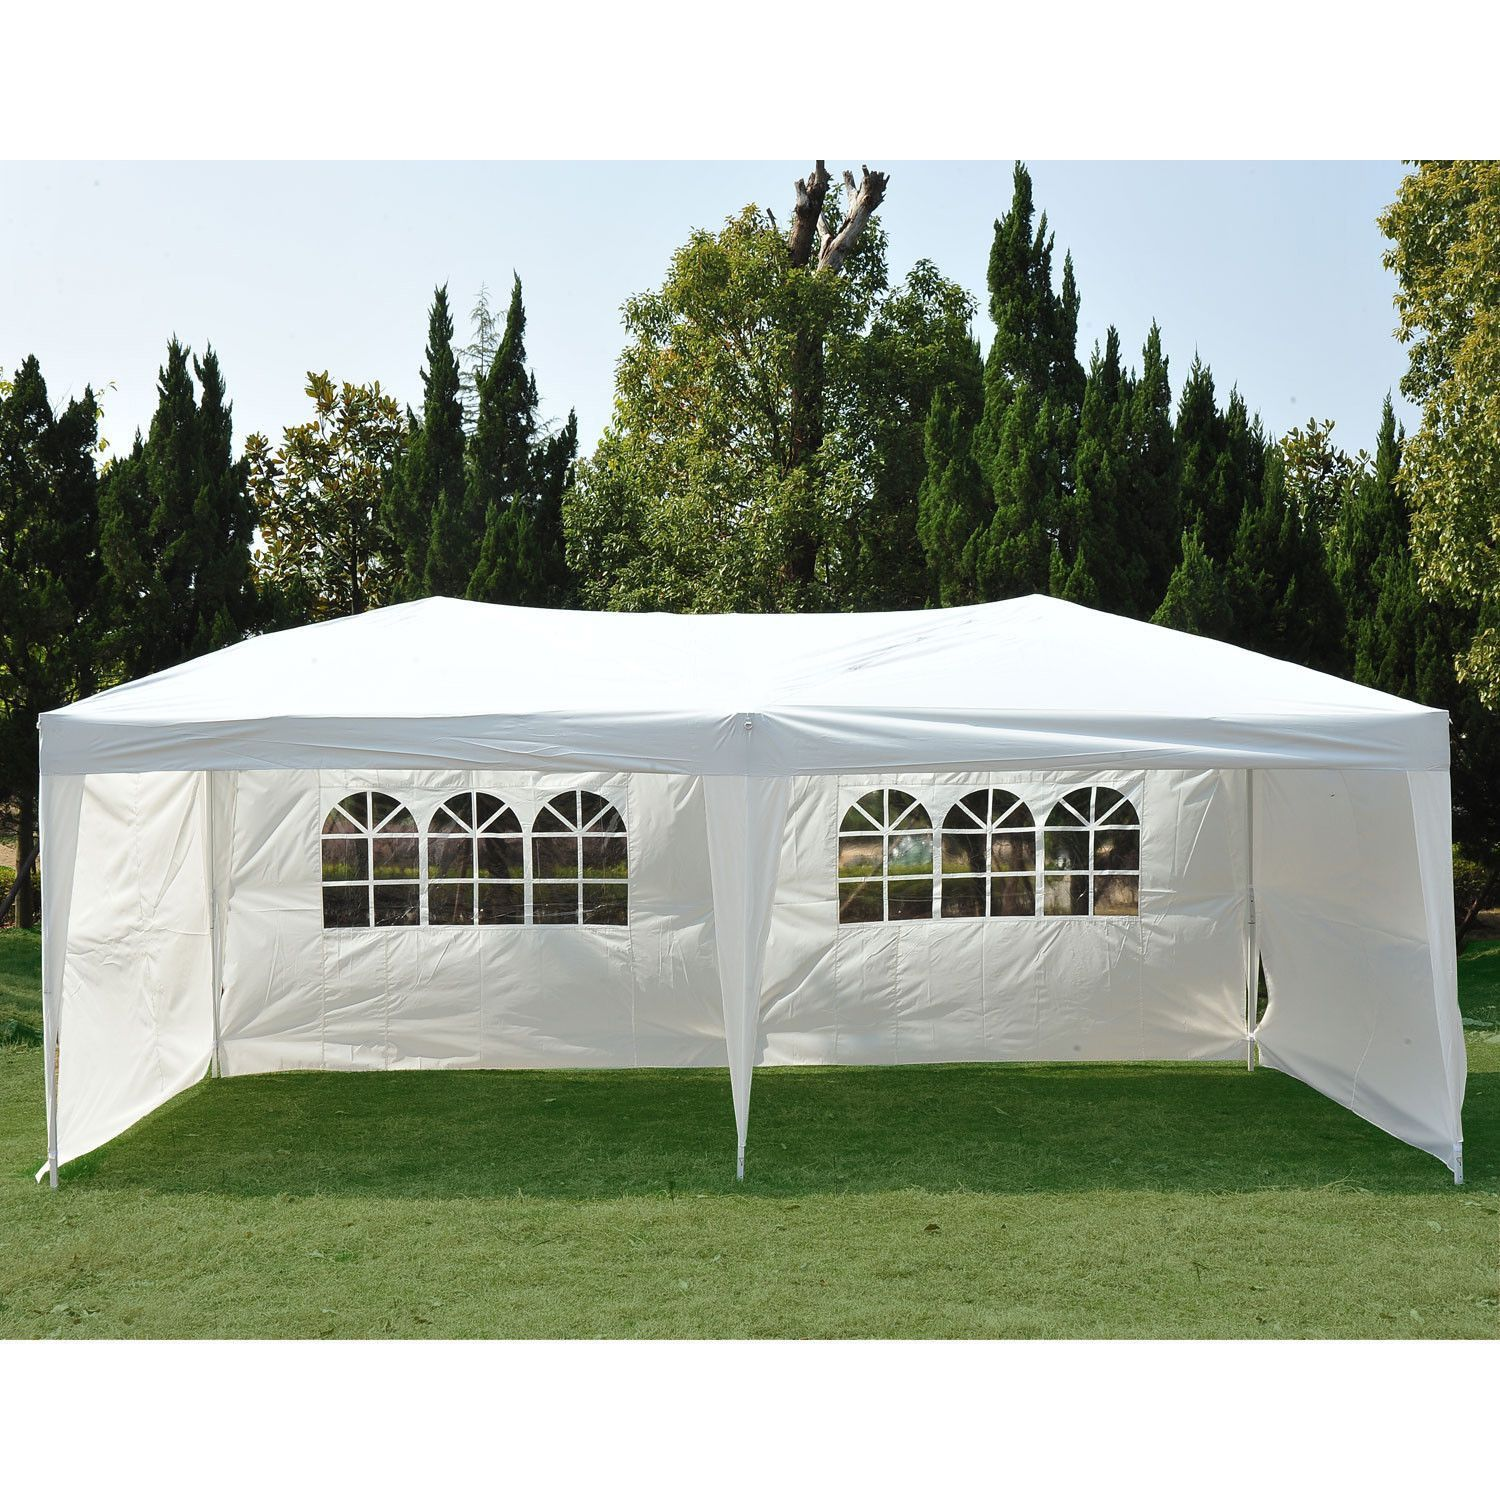 10 X20 Canopy Party Wedding Outdoor Tent Gazebo Pavilion Cater Events Pop Up Canopy Tent Gazebo Party Canopy